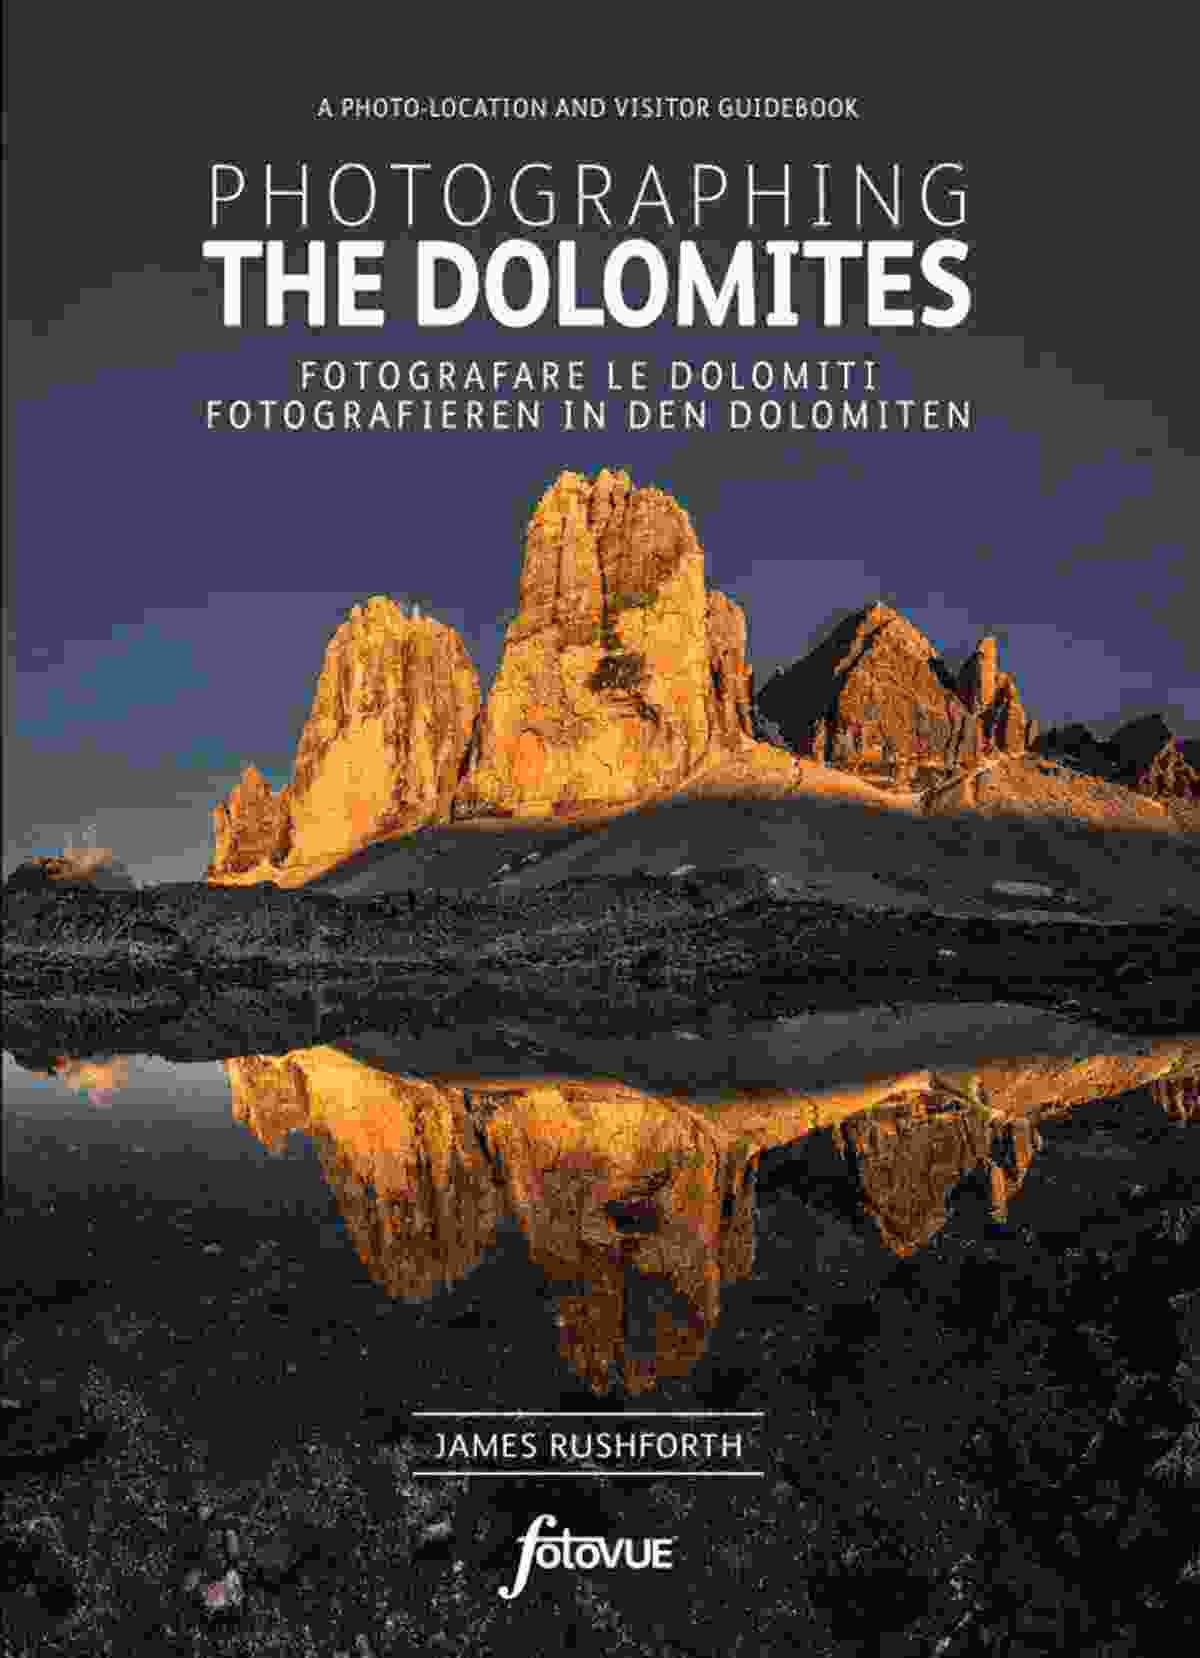 Photographing The Dolomites (James Rushforth)